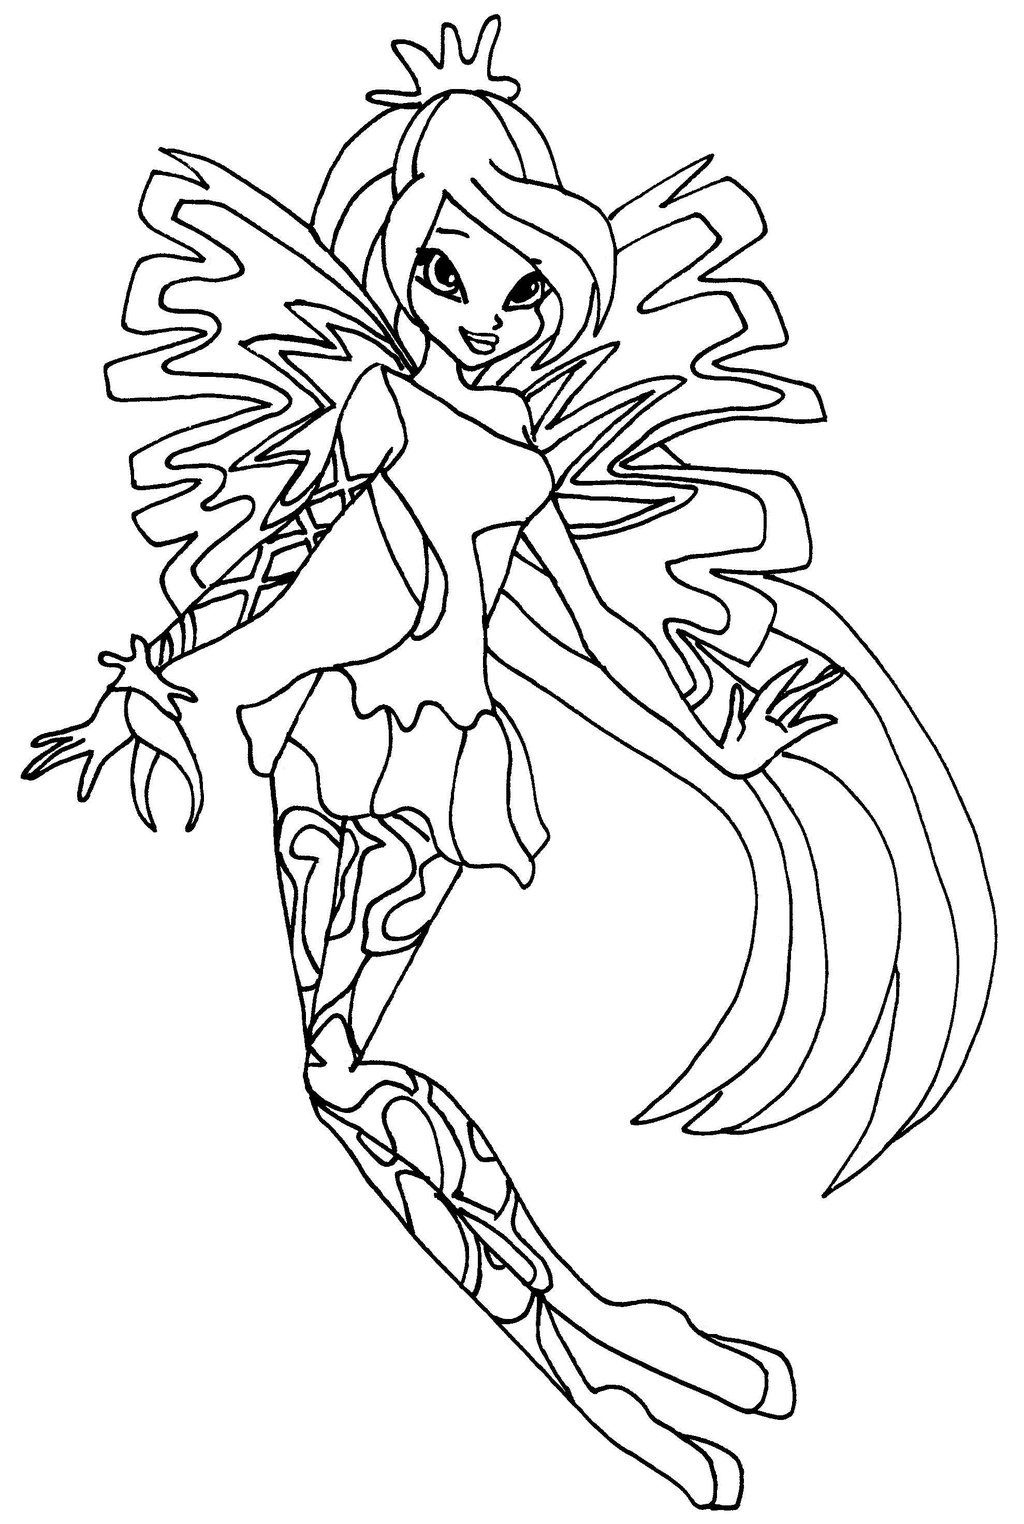 Winx Club Bloom Sirenix Coloring Pages Cartoon Coloring Pages Coloring Pages Paw Patrol Coloring Pages